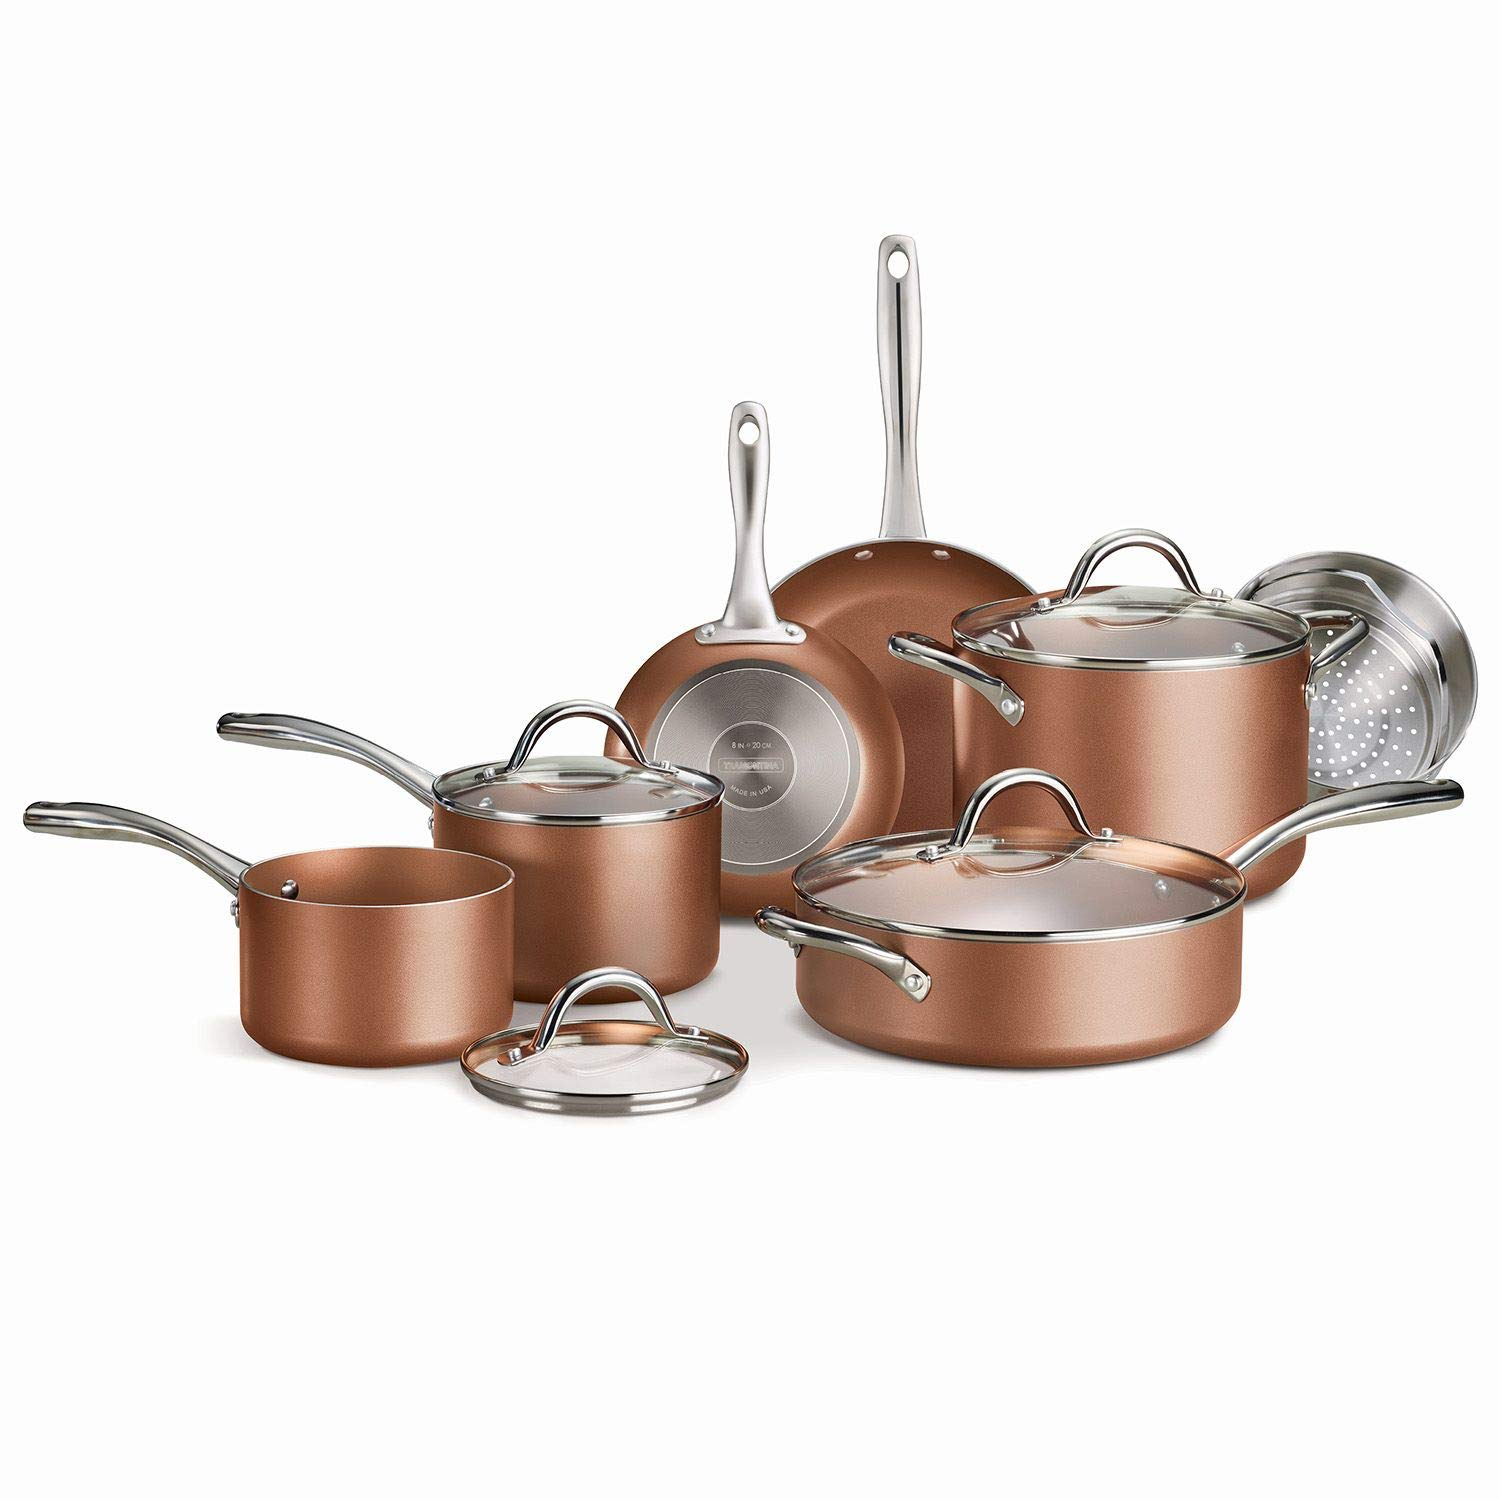 Tramontina 11-Piece Metallic Copper Nonstick Cookware Set